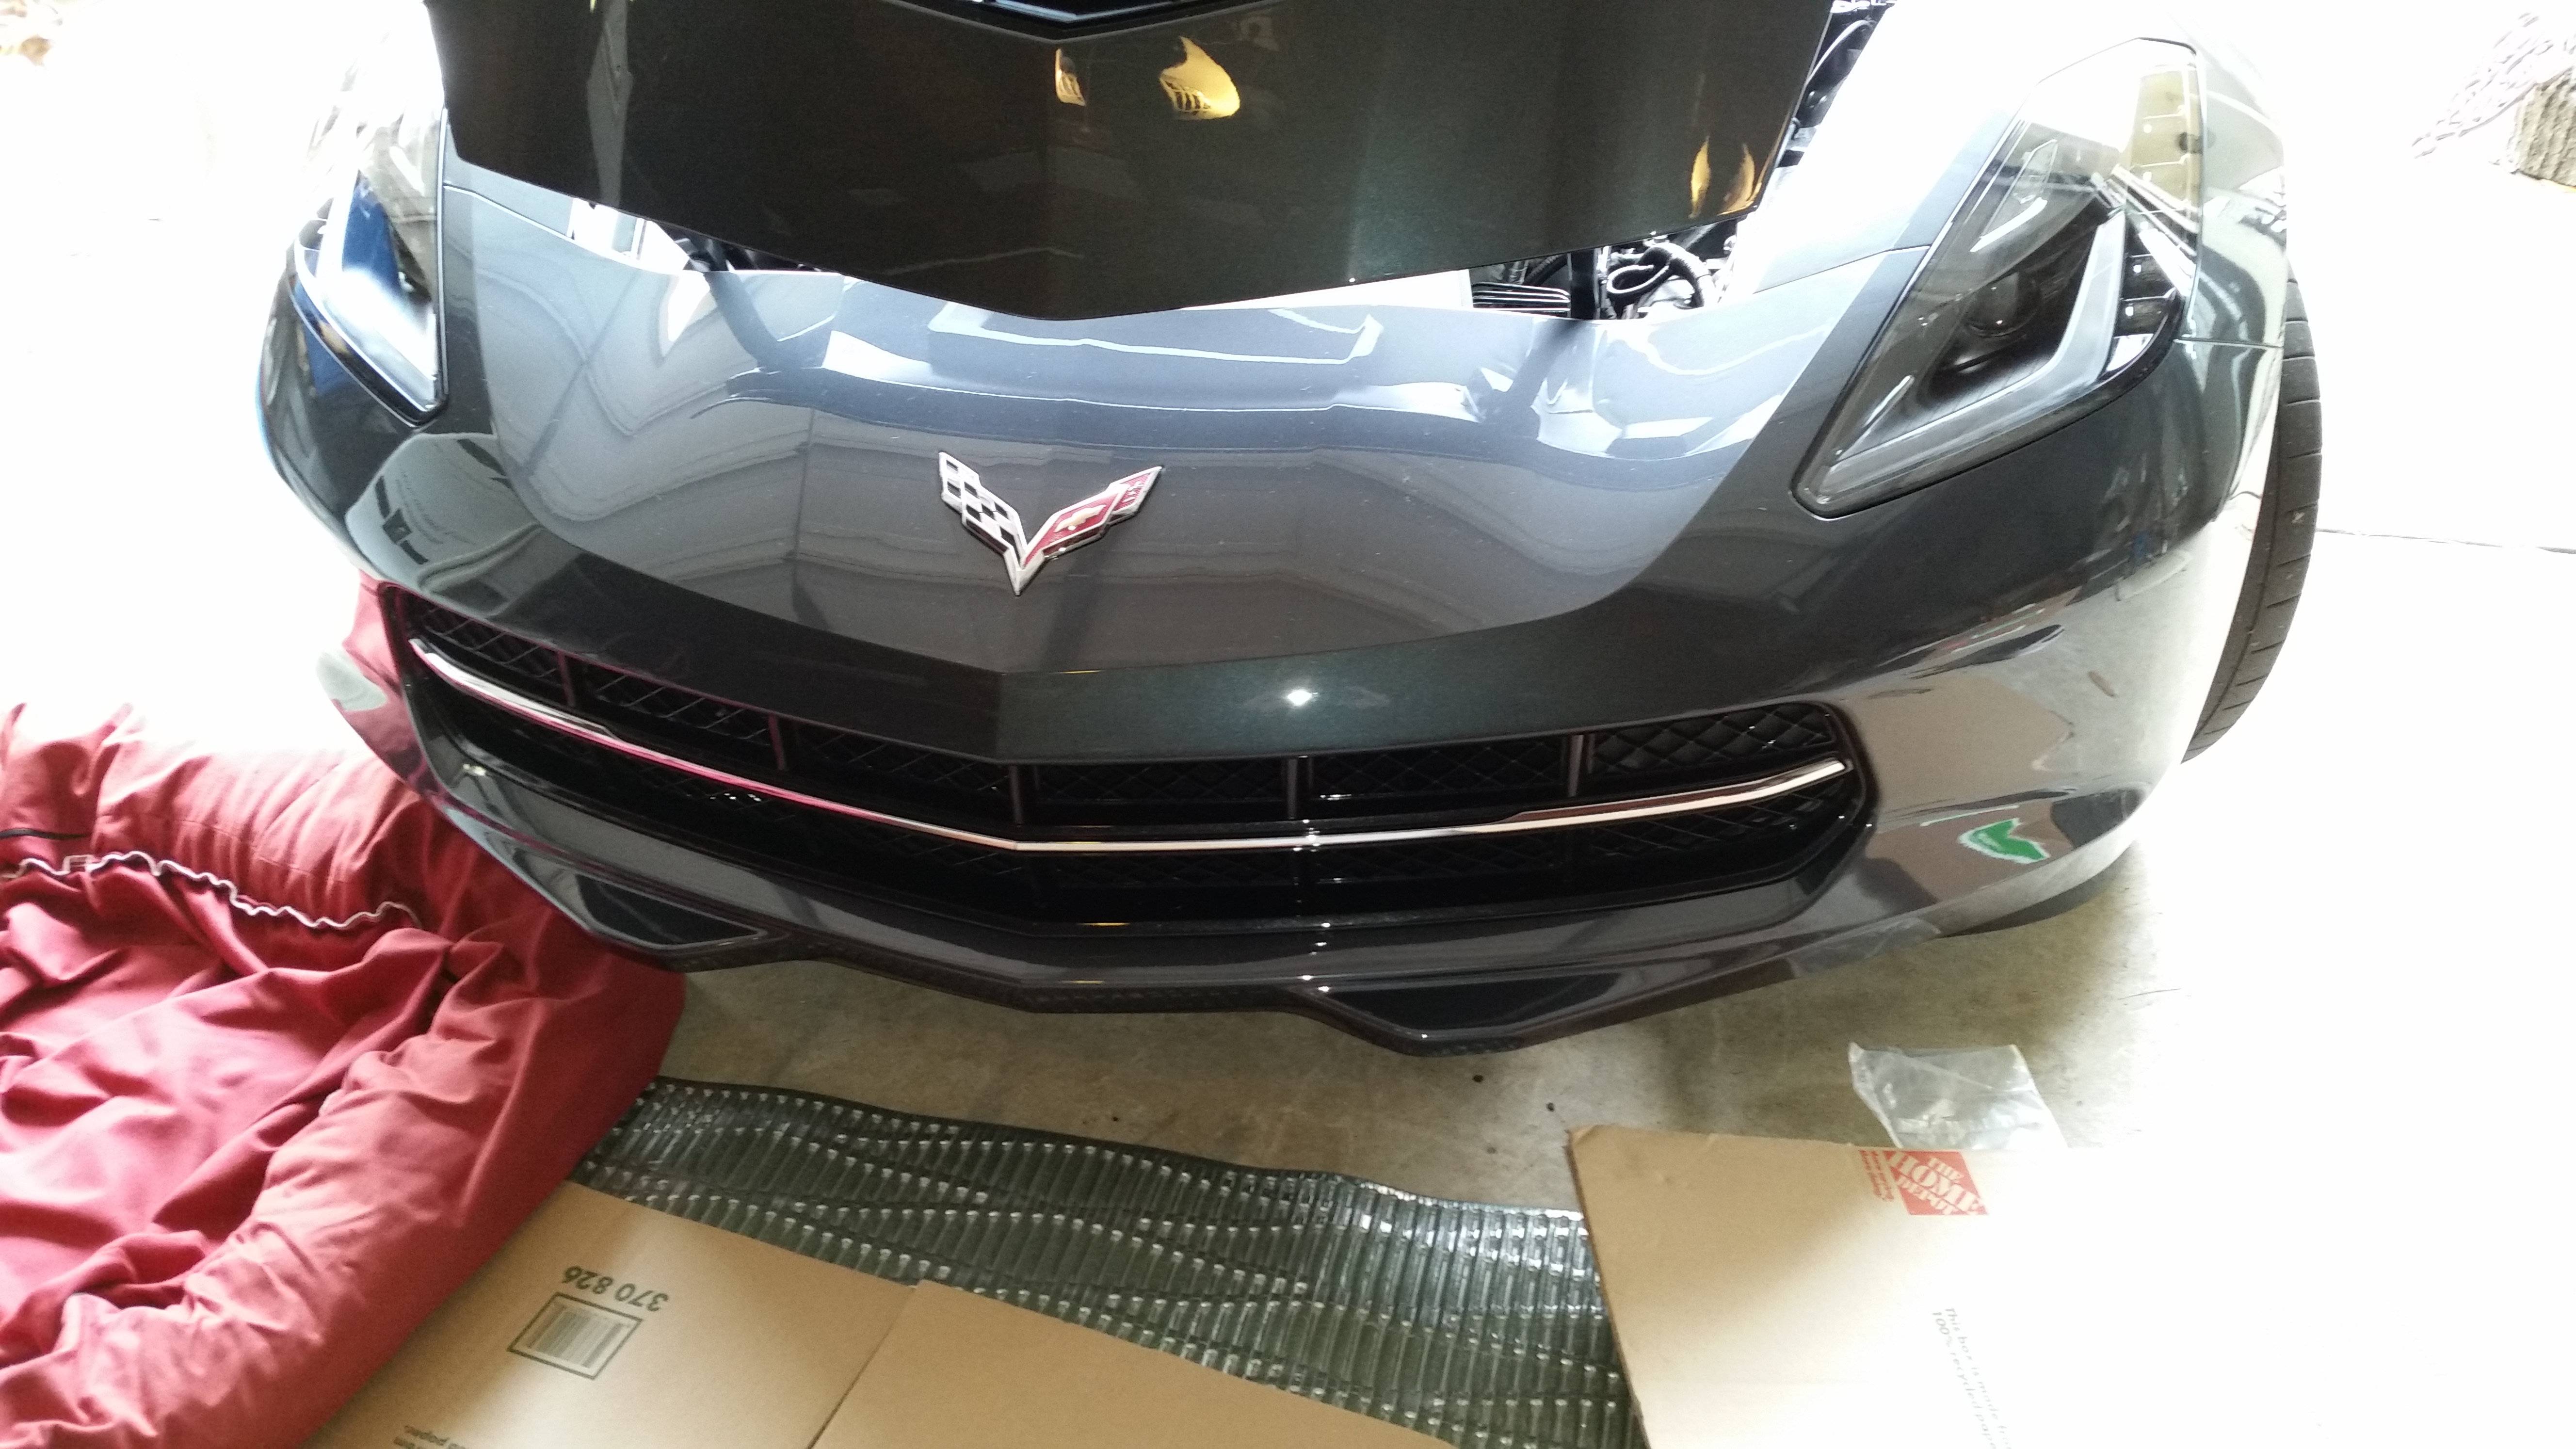 2014 Corvette Diy Bumper Cover And Grille Removal Video